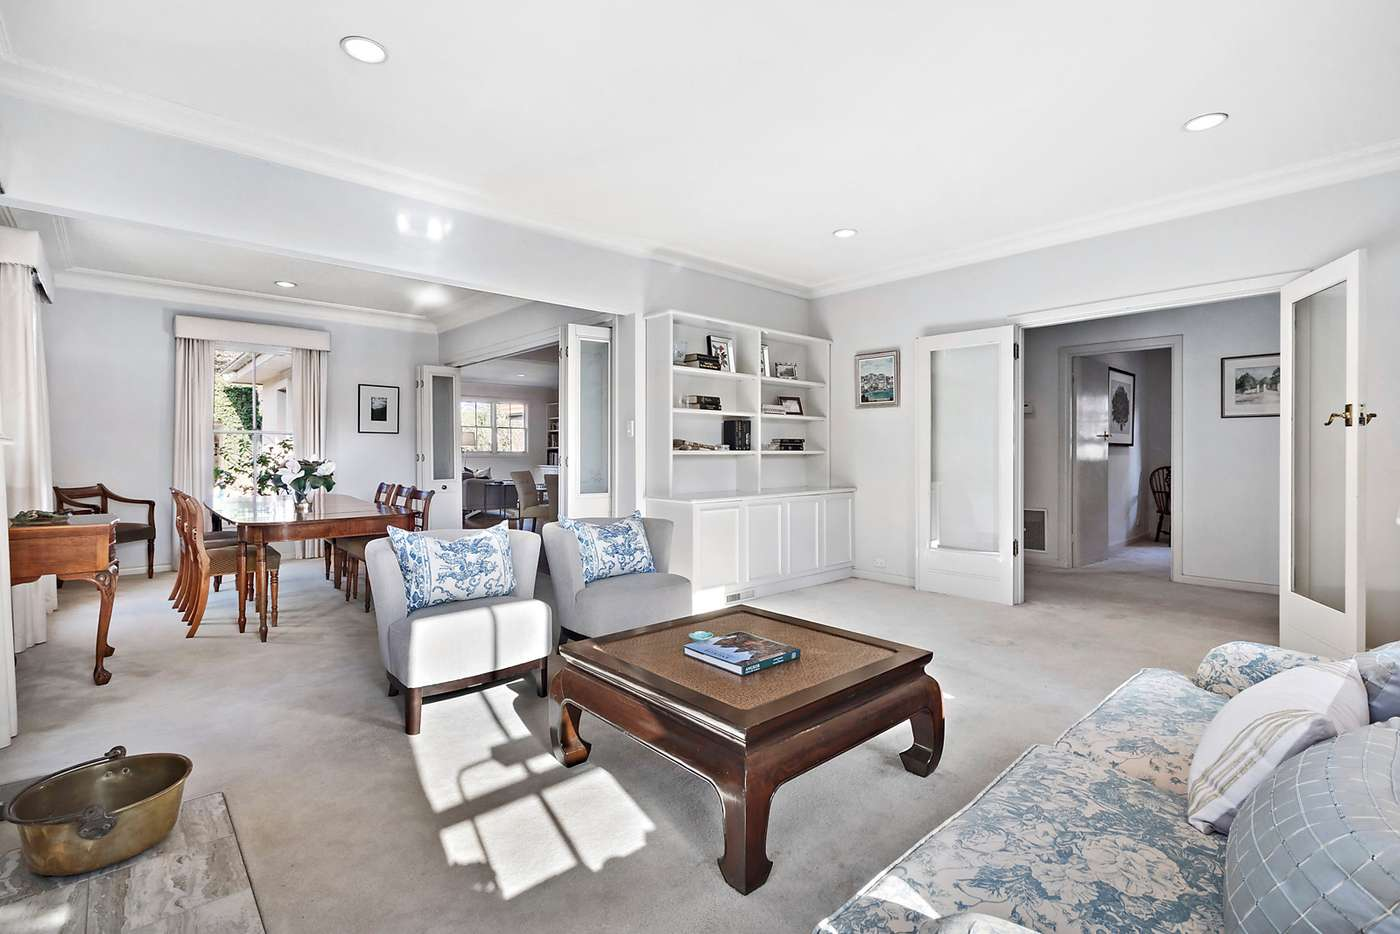 Sixth view of Homely house listing, 54 Beaver Street, Malvern East VIC 3145